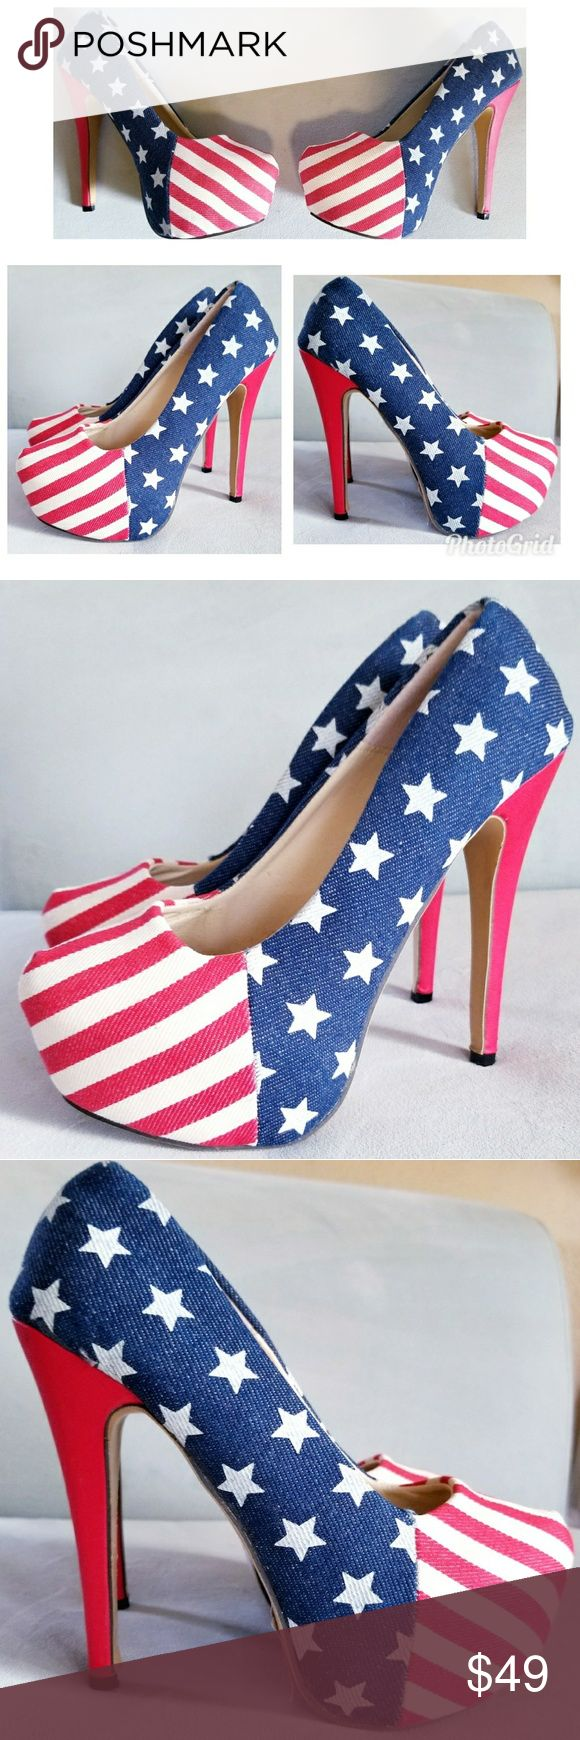 American Flag Platform Heels Sz 8 Stars & Stripes Super cute! Worn once for a couple of hours, see all photos! Red, white & blue, American Flag Heels. There's a glue stain on the interior, see pictures. Canvas/Denim type material. Shoes Platforms